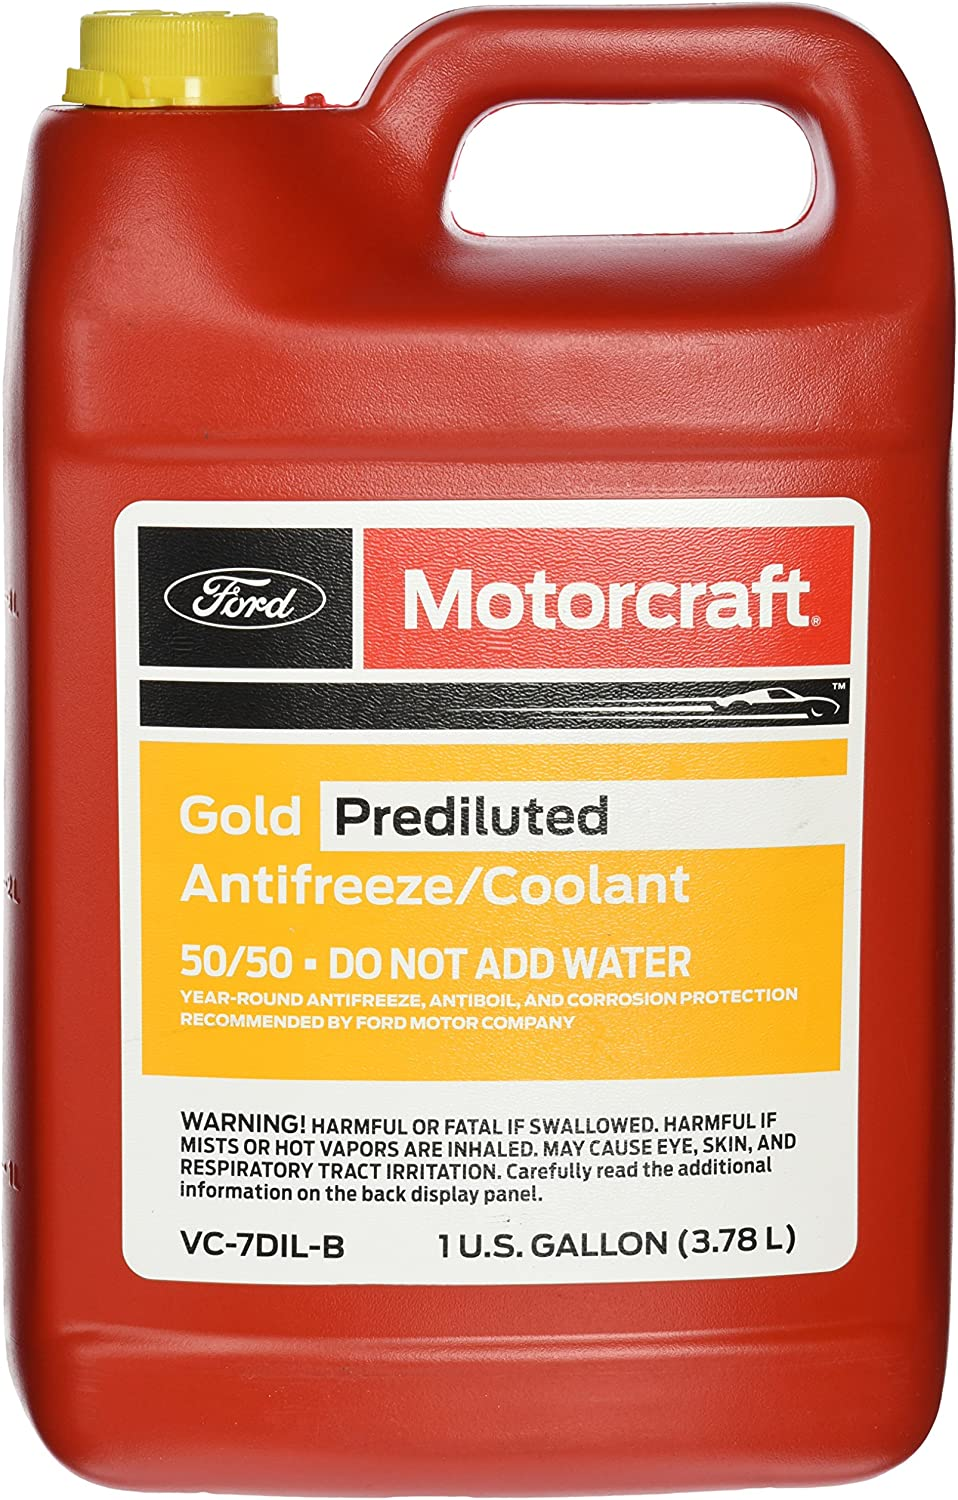 Genuine Ford Fluid VC-7DIL-B Gold Pre-Diluted Antifreeze/Coolant - 1 Gallon